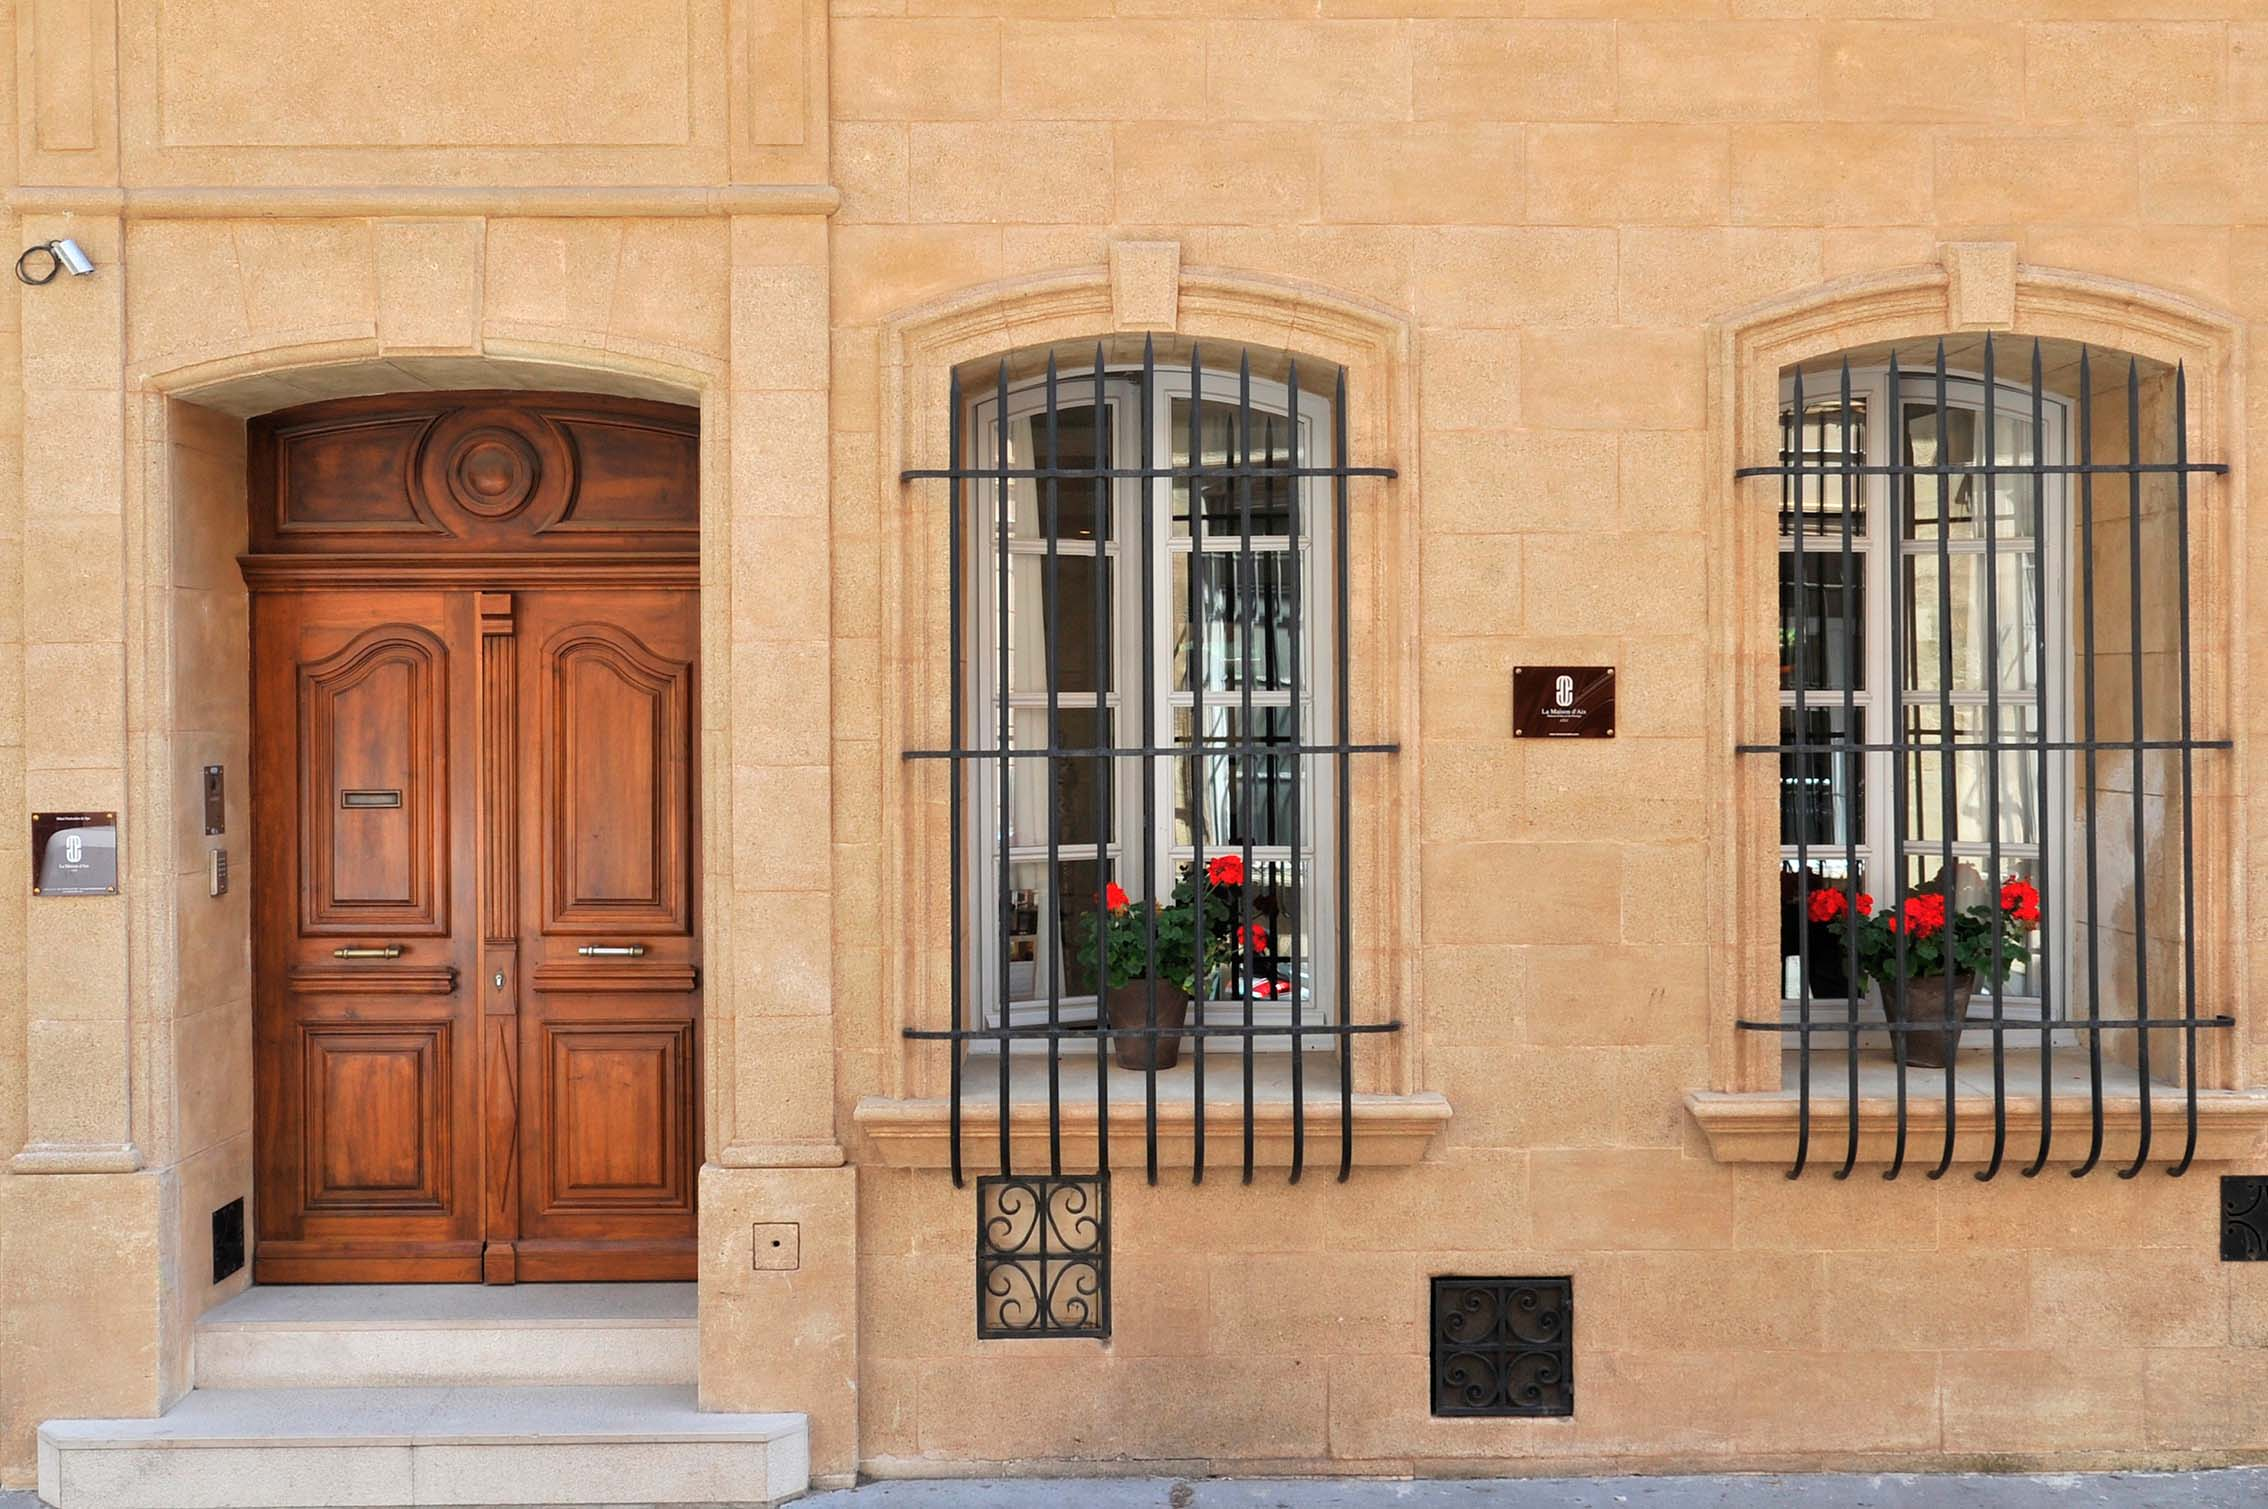 Maison dAix, an intimate boutique hotel in Aix en Provence  From the